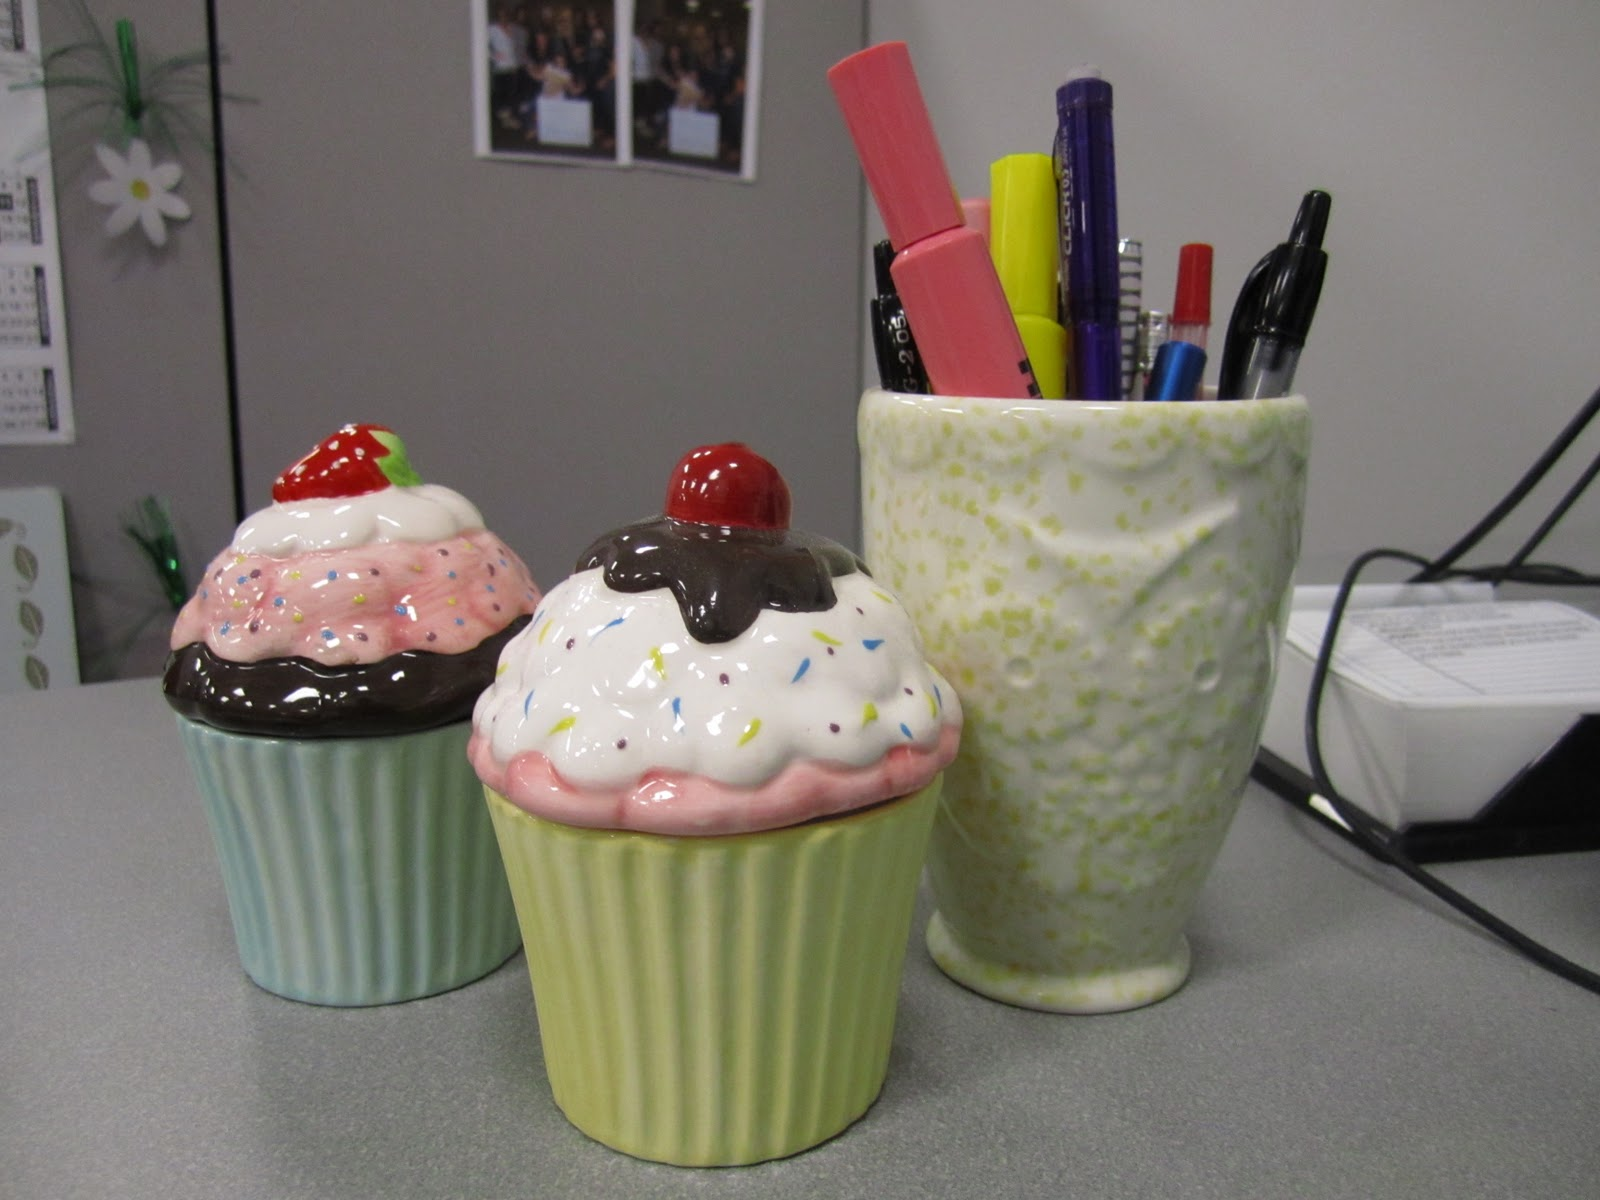 { The Life In Cupcakes }: Cupcake Things At The Workplace